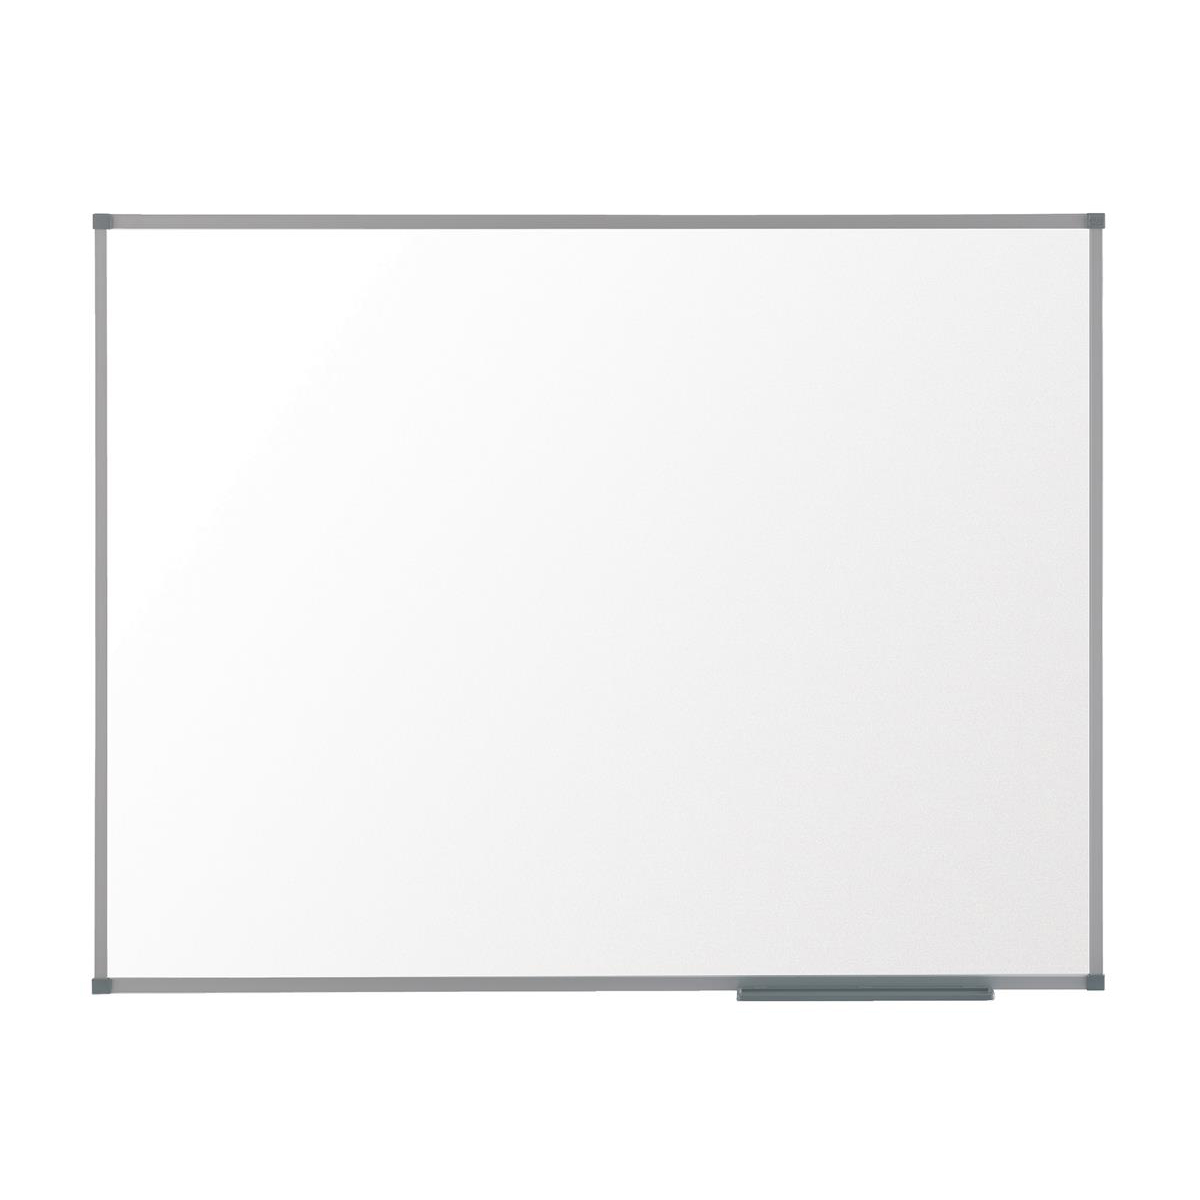 Nobo Basic Steel Whiteboard Magnetic Fixings Included W1200xH900mm White Ref 1905211